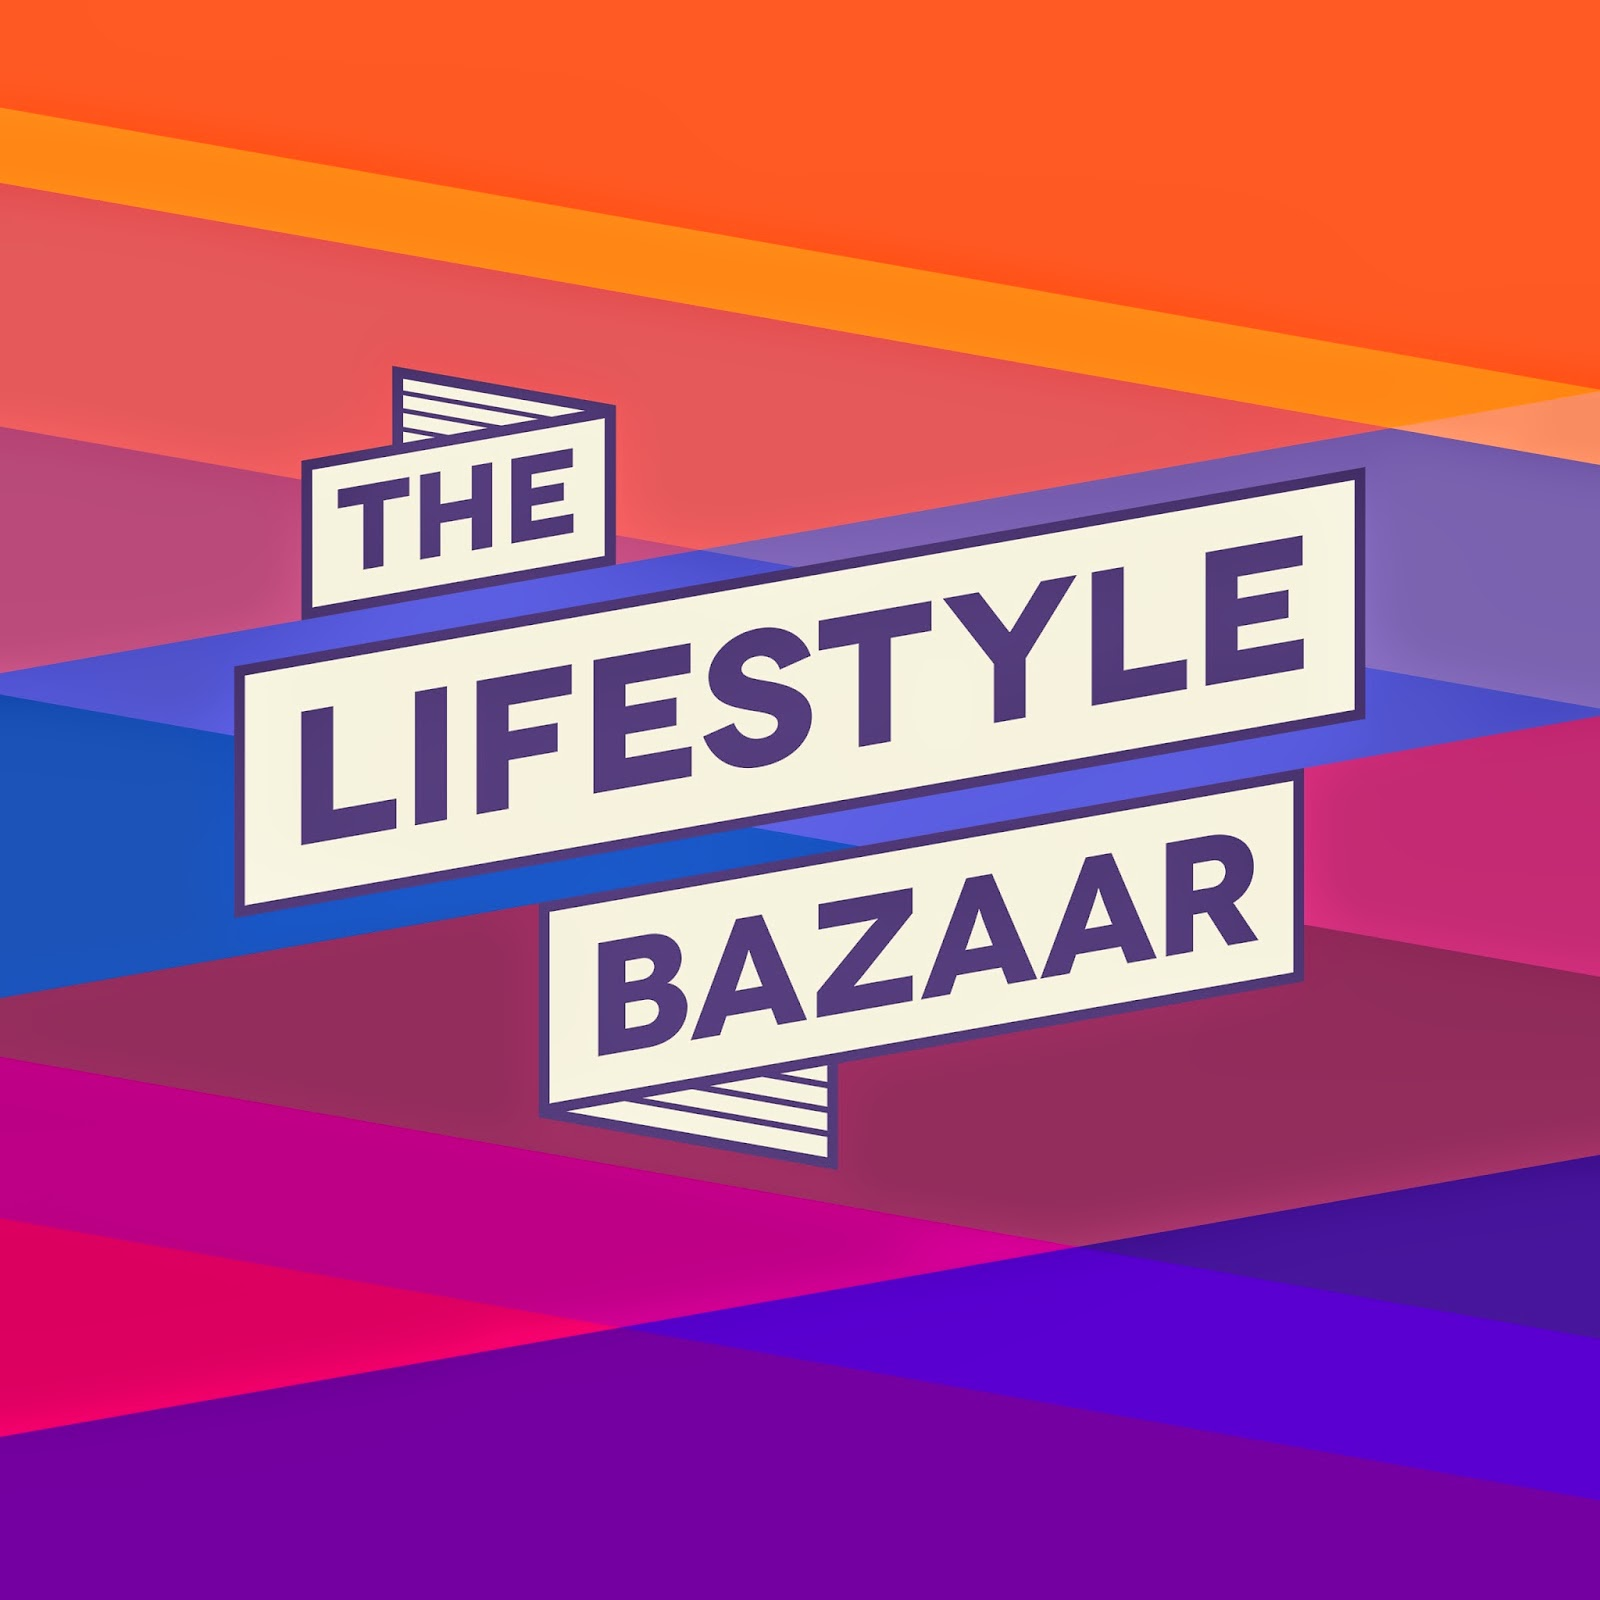 The Lifestyle Bazaar